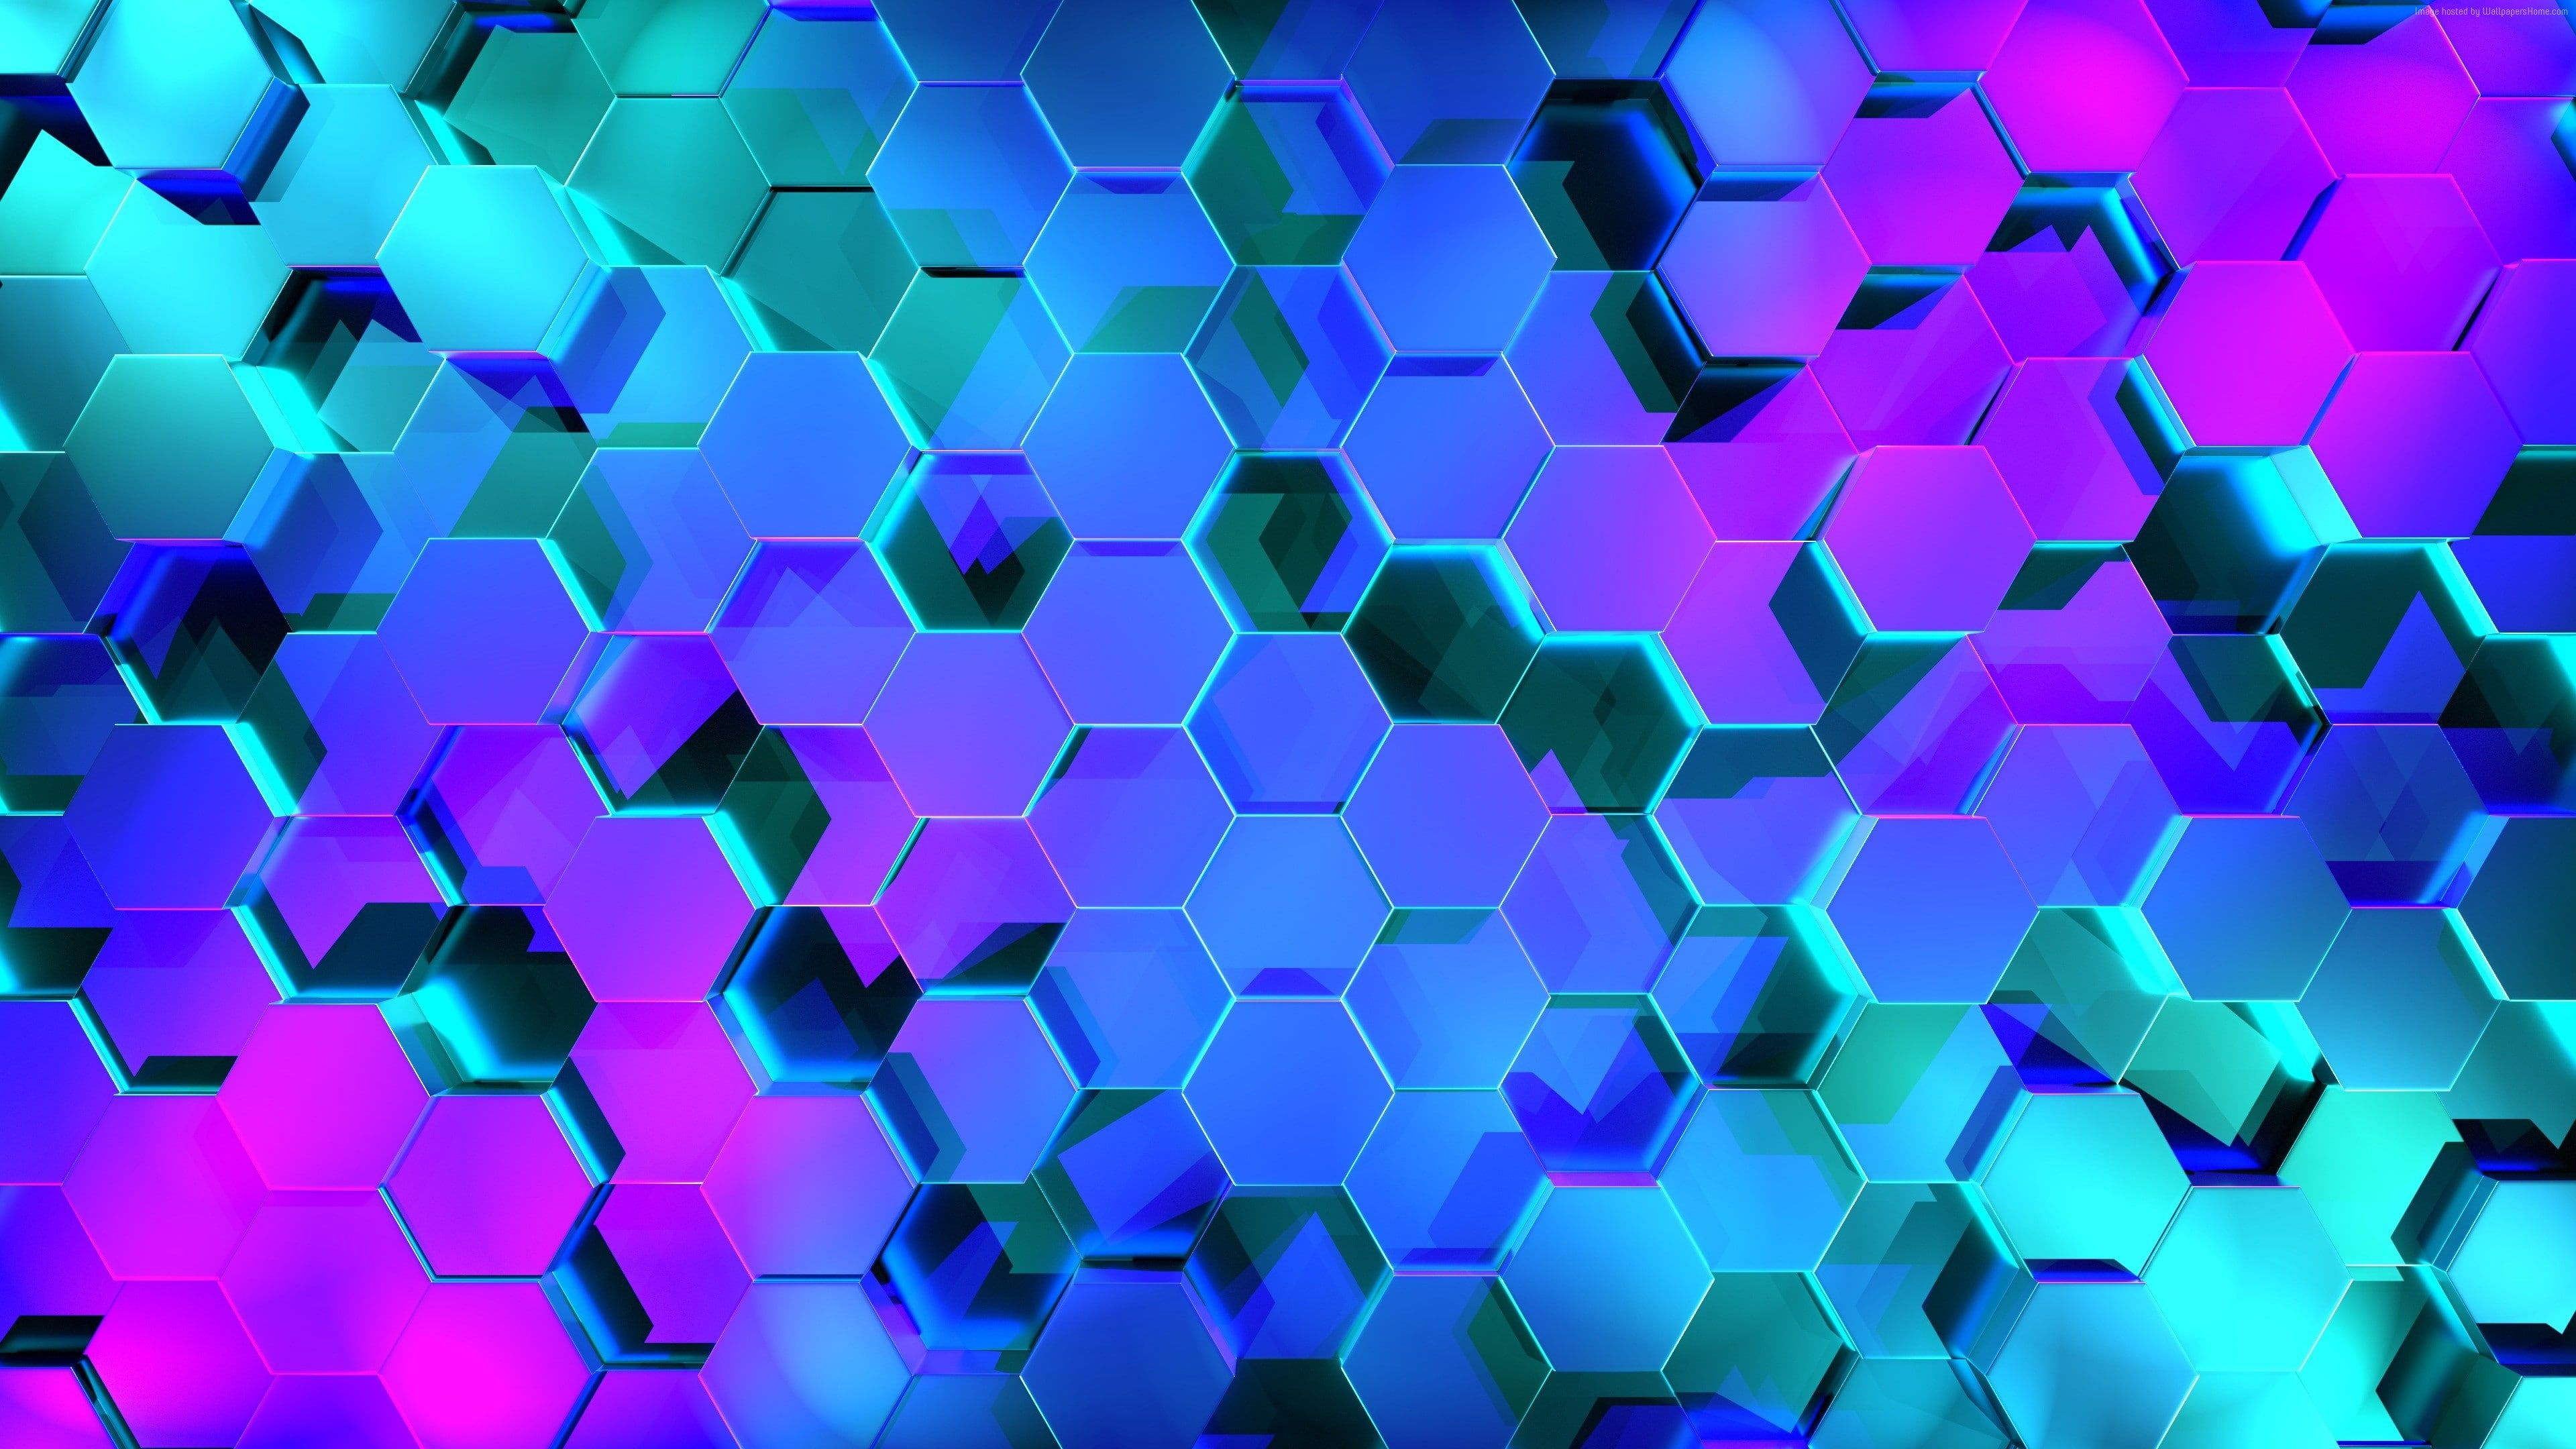 Hexagon 3d 4k Geometry Colors 4k Wallpaper Hdwallpaper Desktop Hexagon Wallpaper Neon Wallpaper Abstract Wallpaper